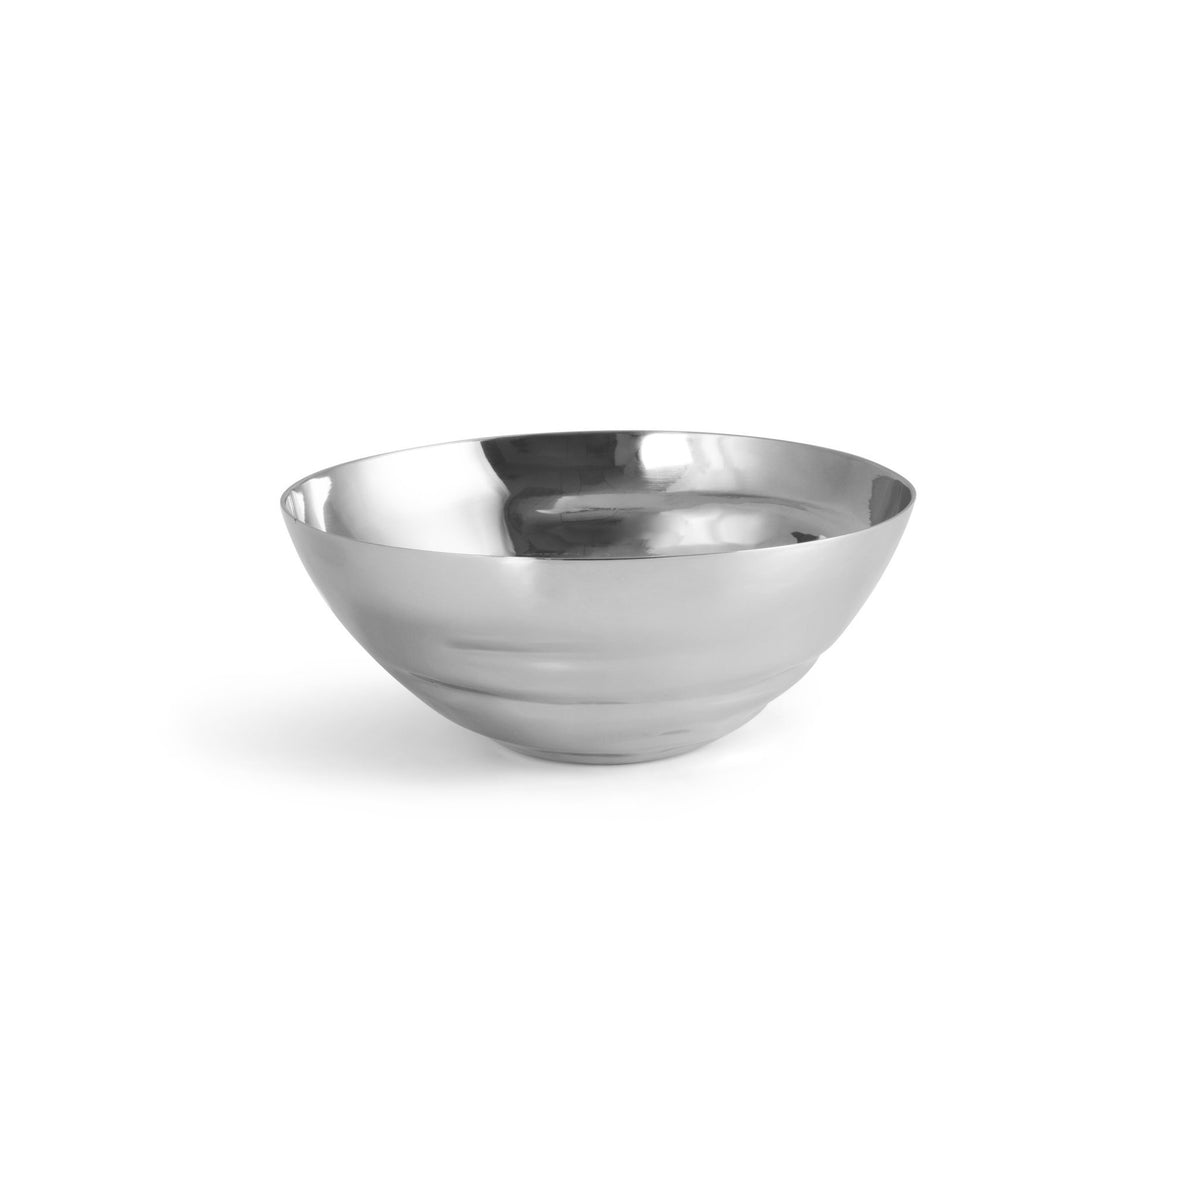 Ripple Effect Nut Dish